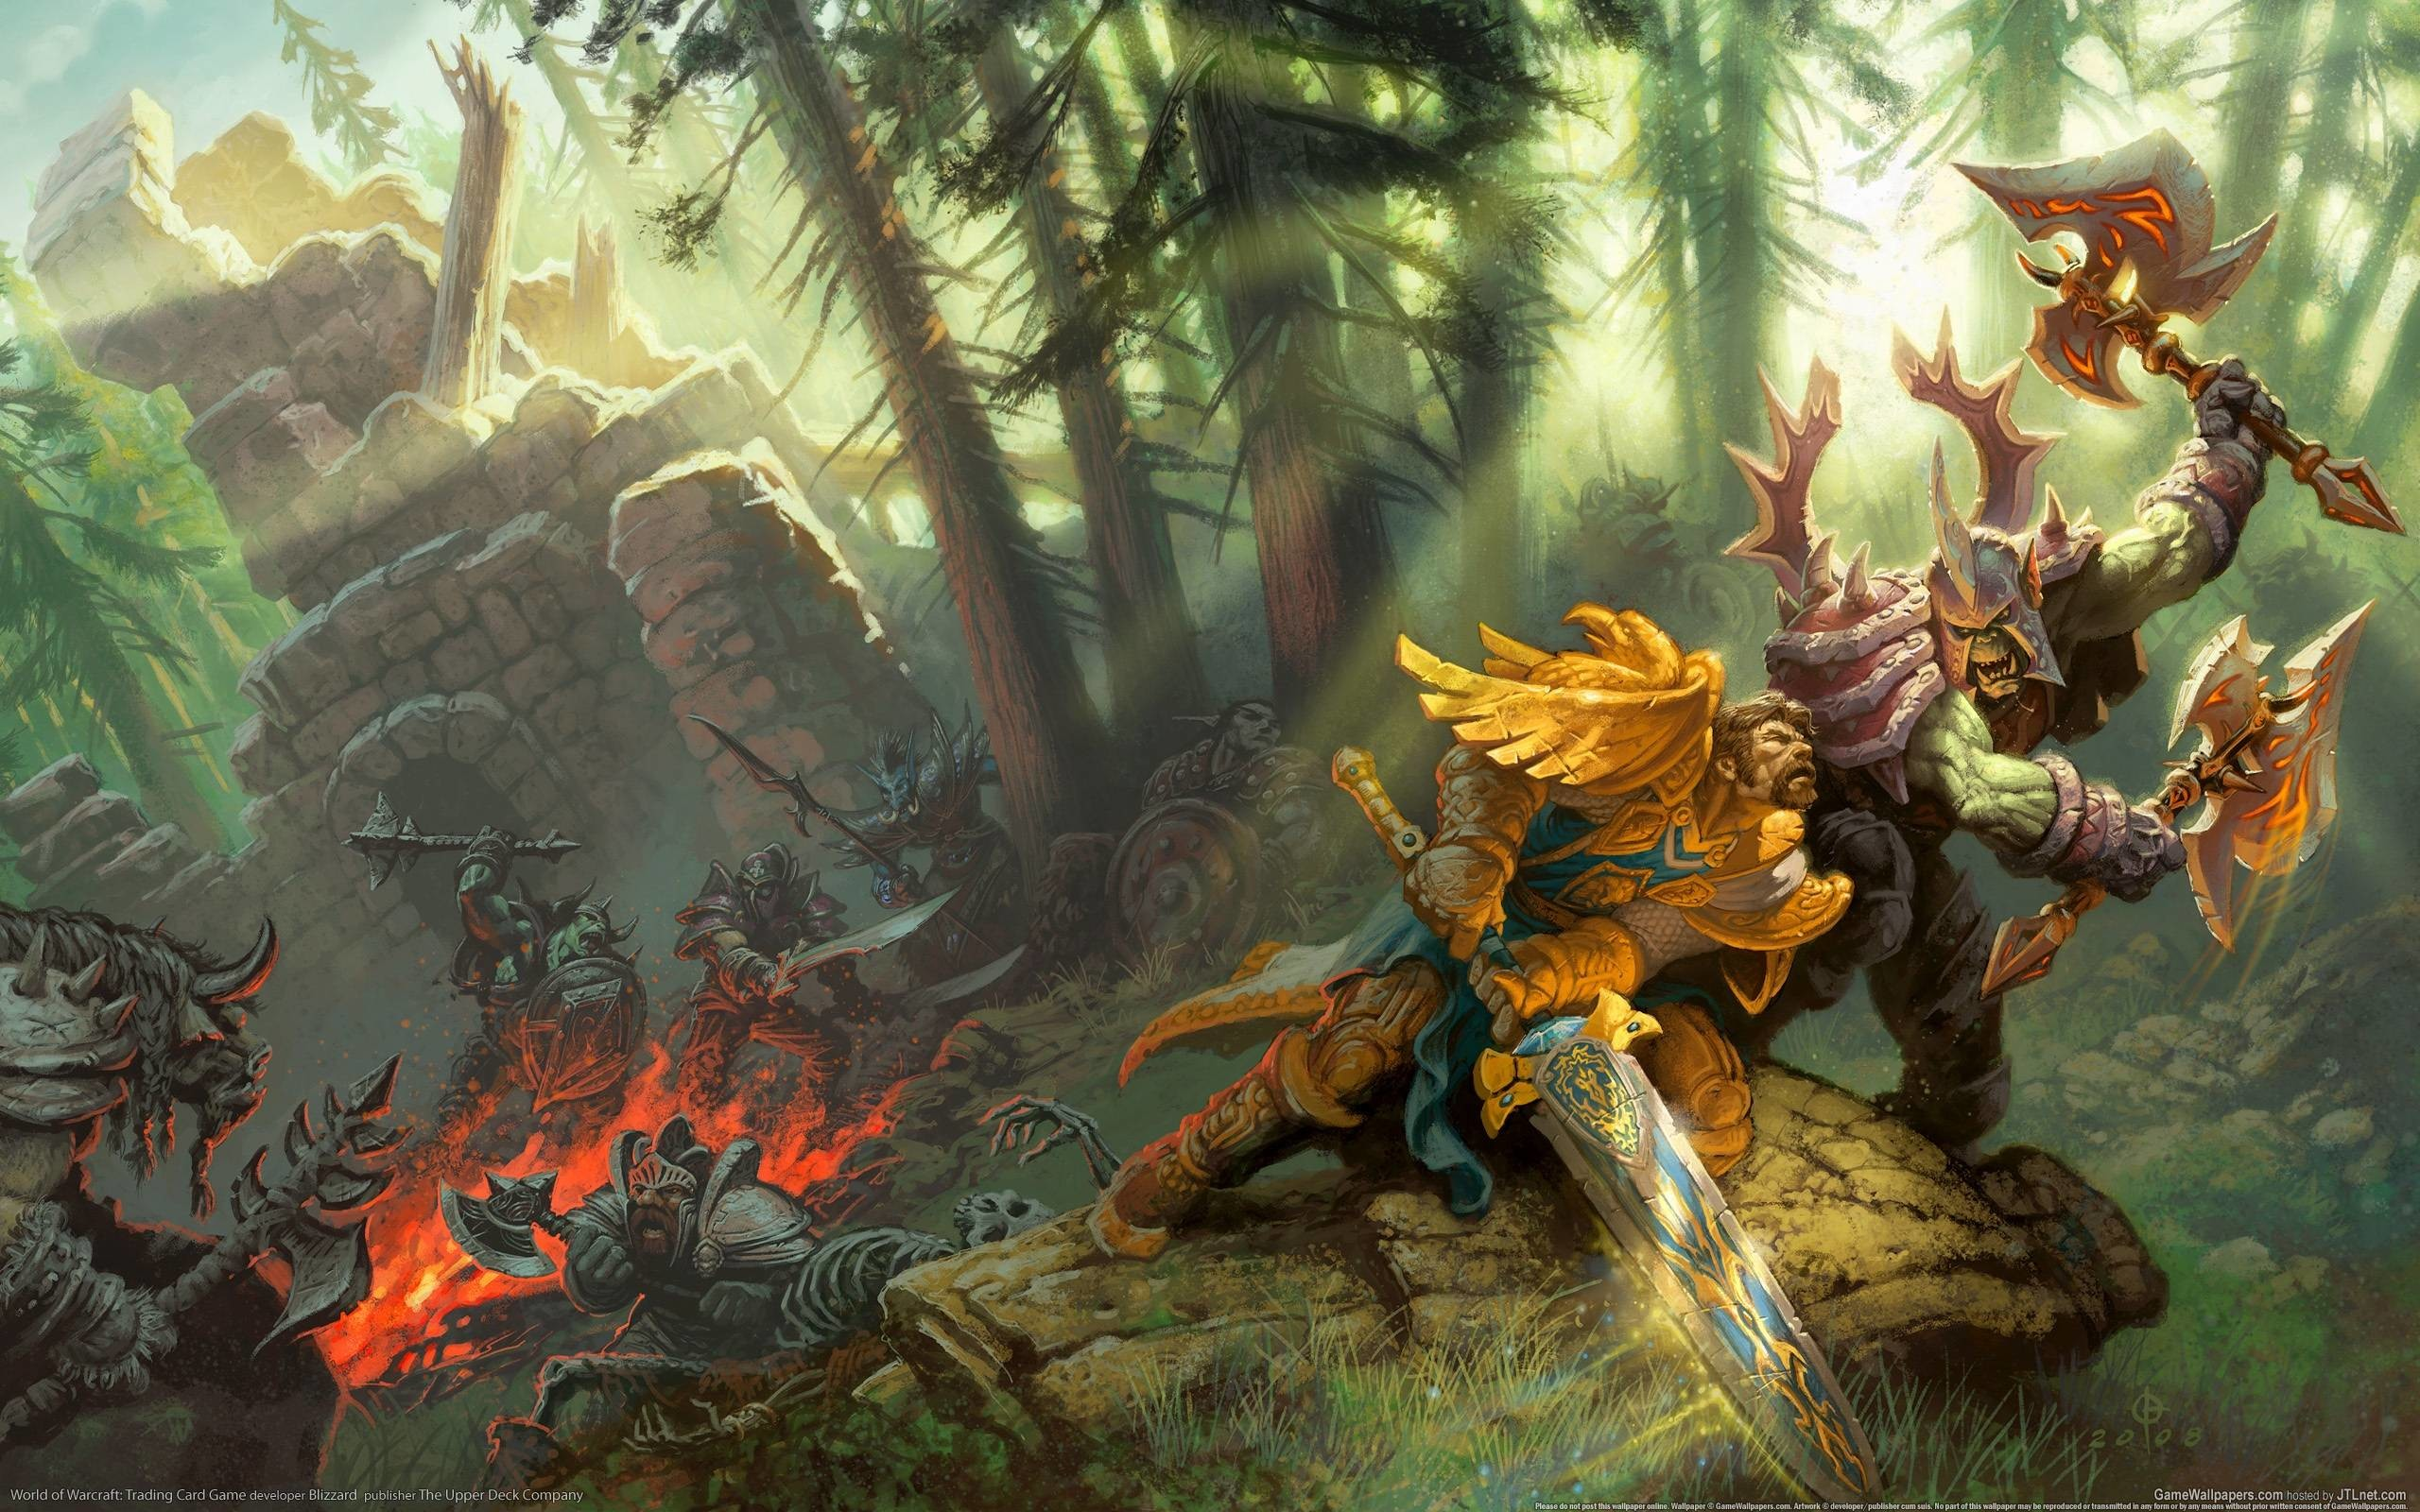 Res: 2560x1600, epic fight : Desktop and mobile wallpaper : Wallippo